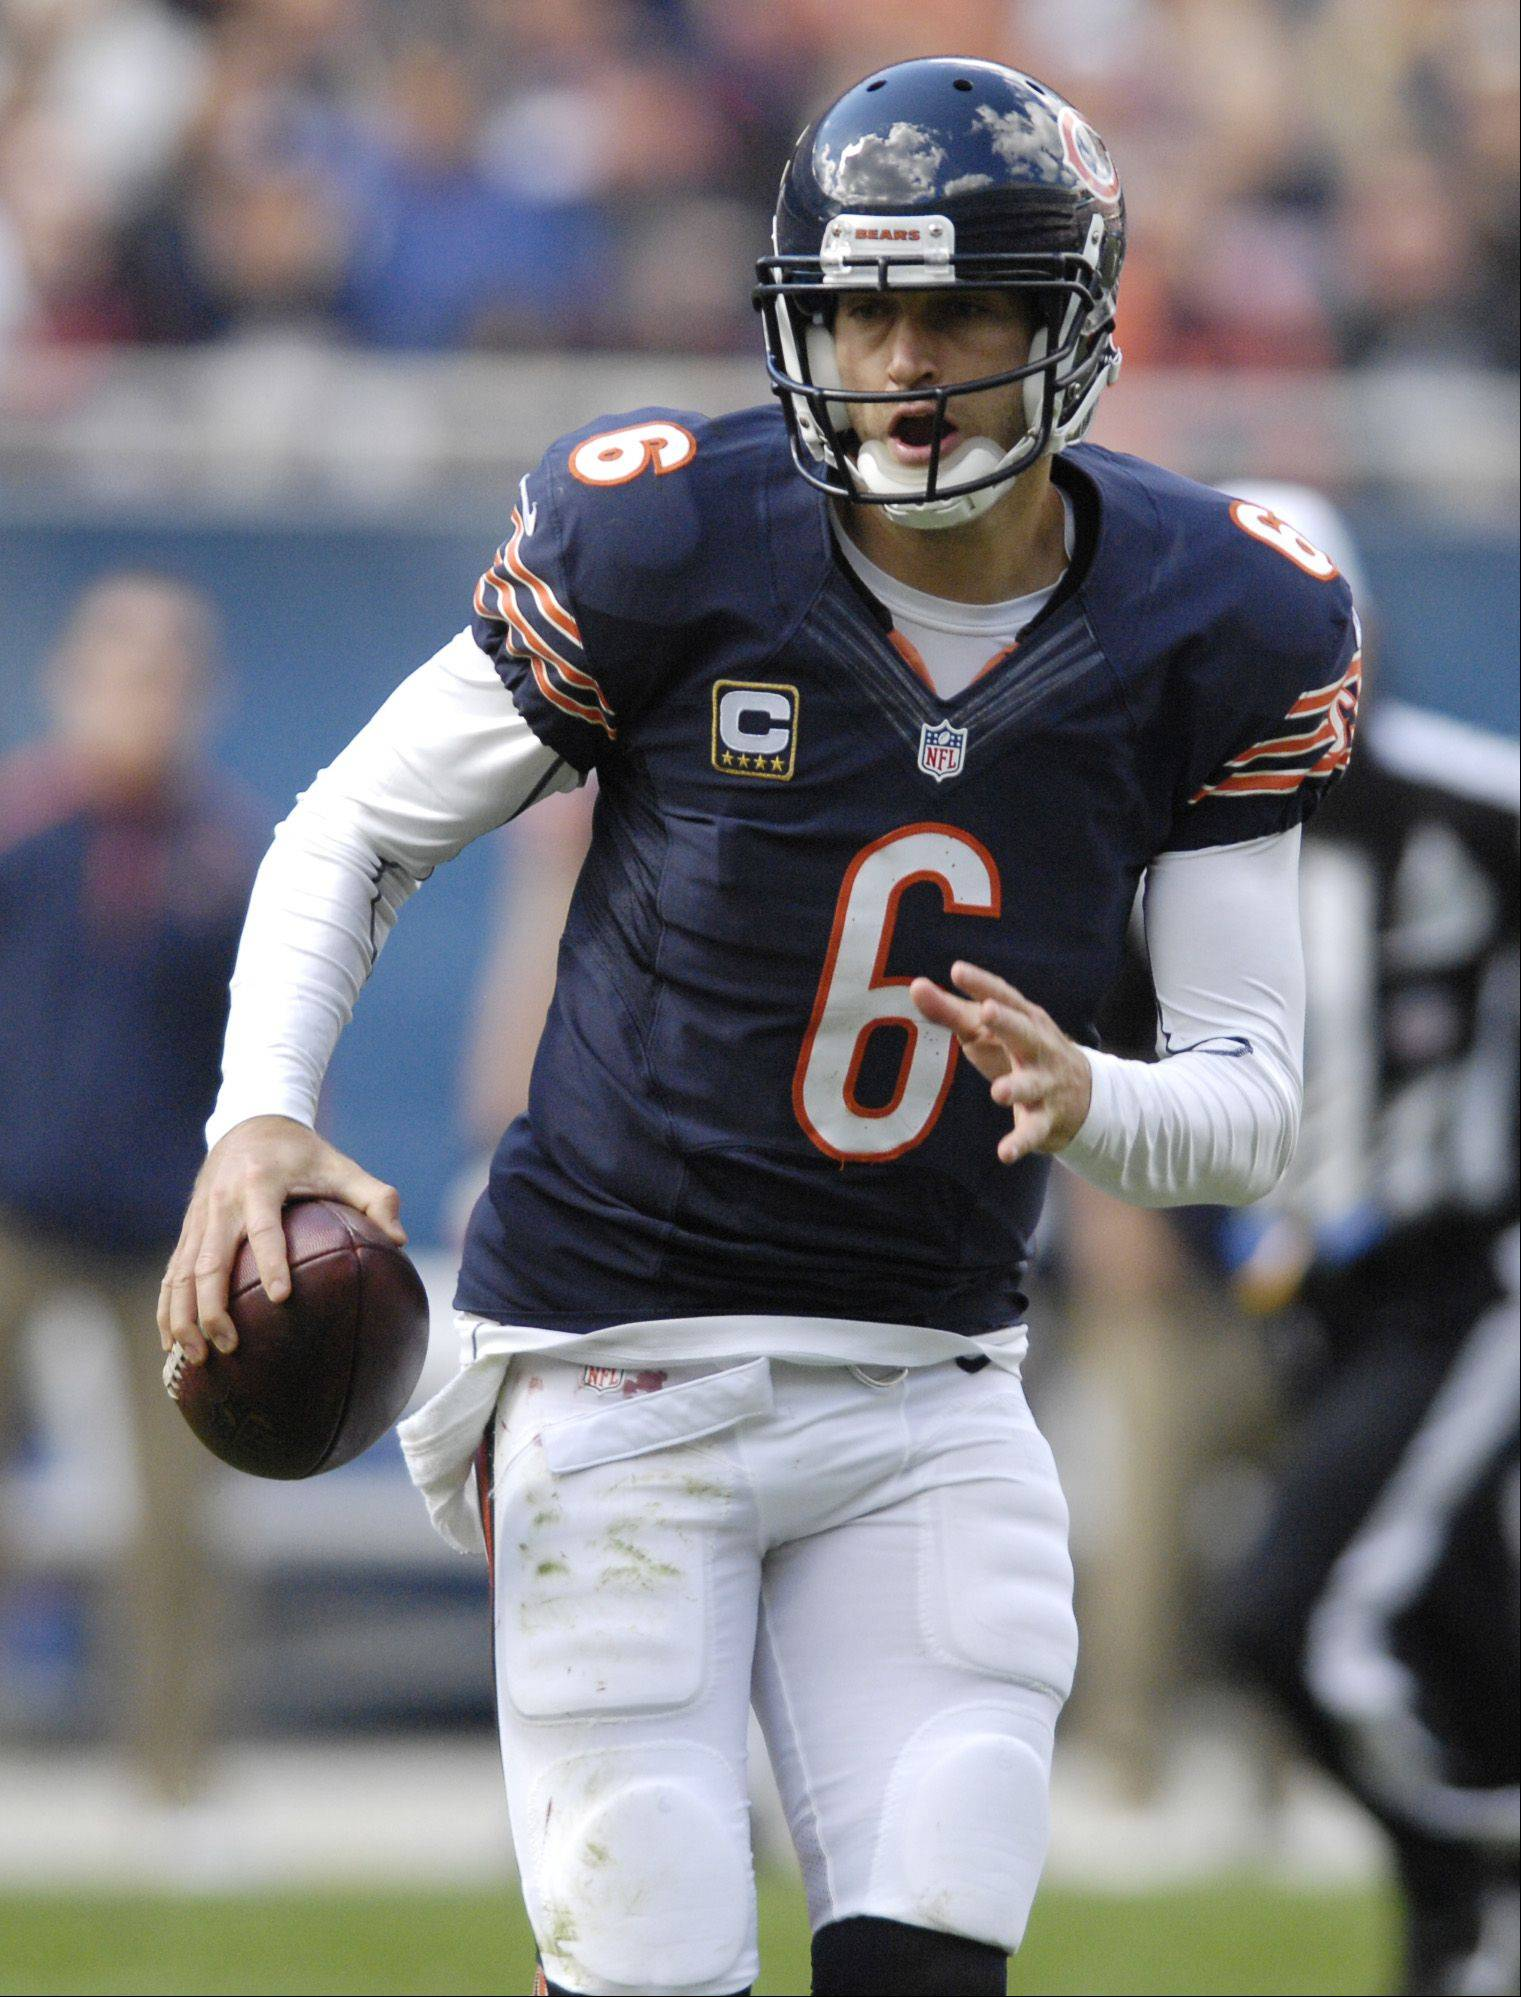 Bears quarterback Jay Cutler scrambles with the ball against the St. Louis Rams at Soldier Field in Chicago.